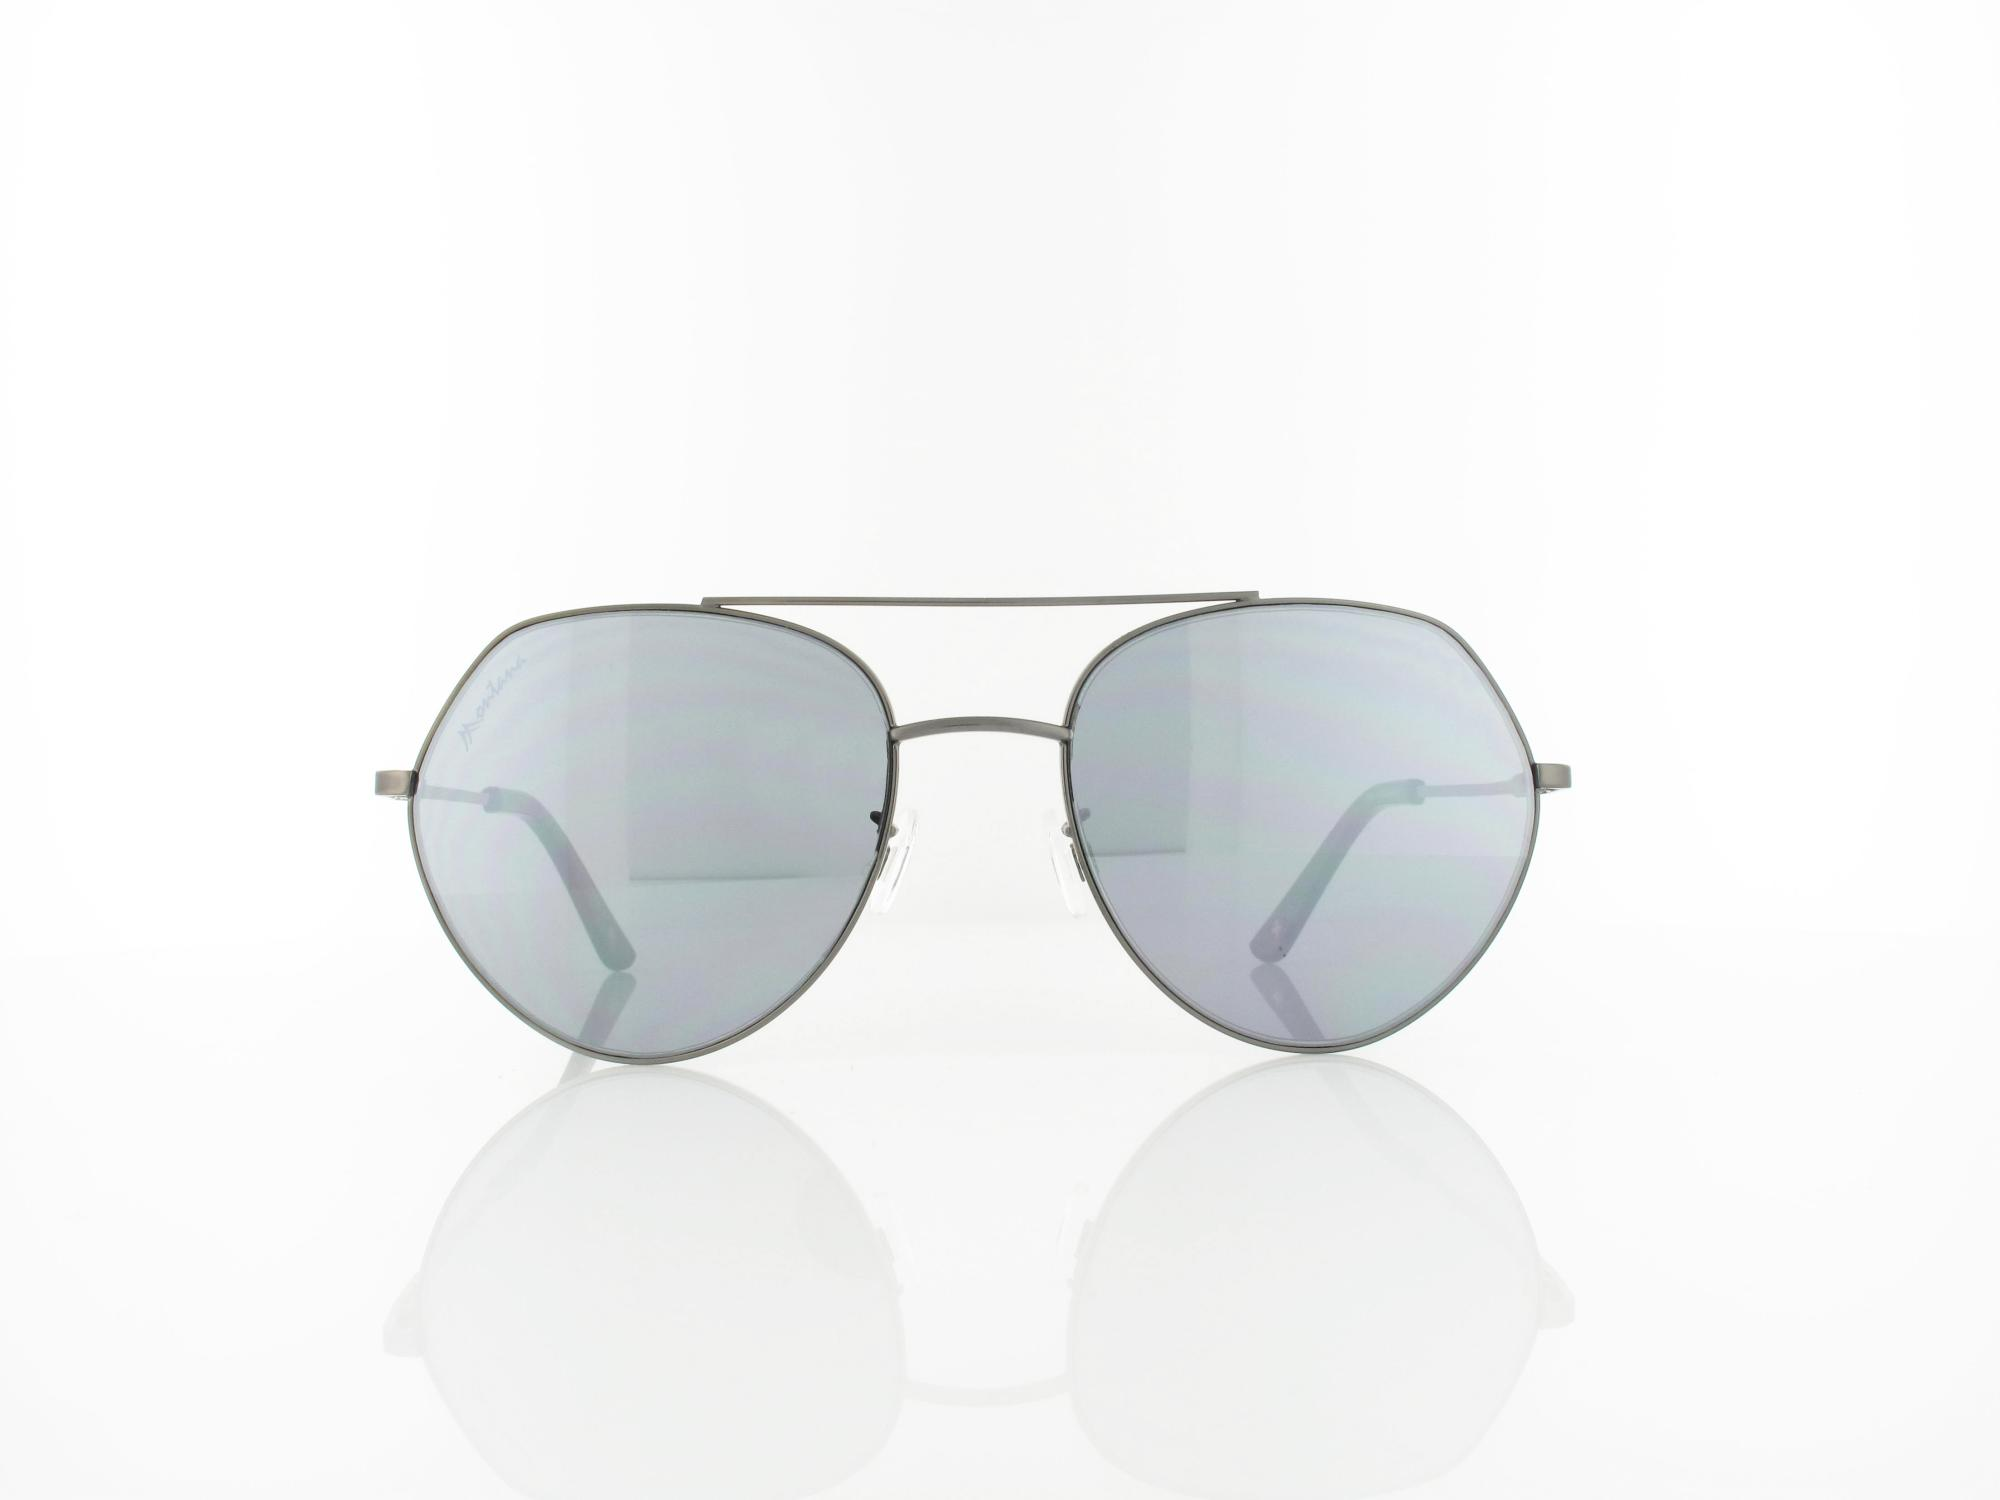 Brilando | MS83 57 | grey / revo silver